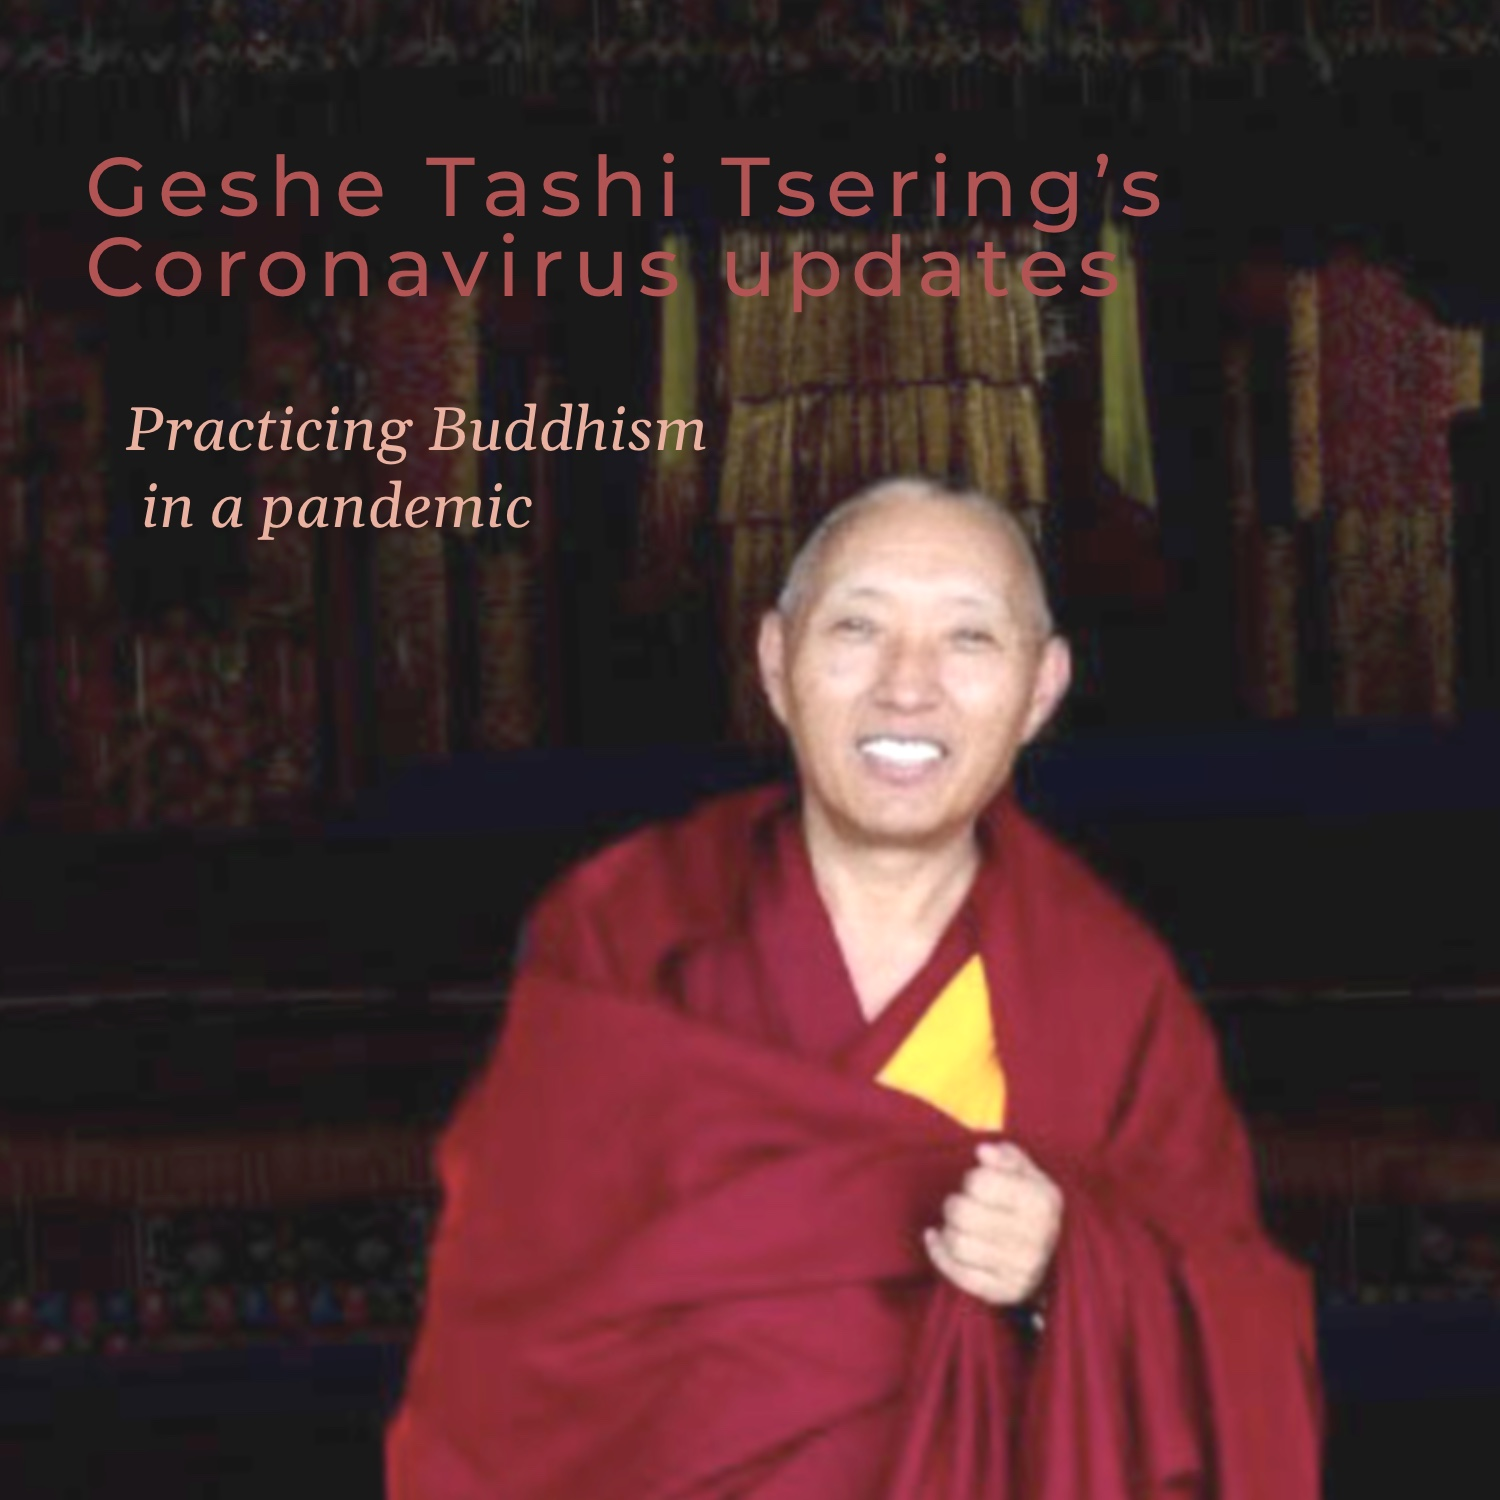 Practicing Buddhism in a Pandemic – Geshe Tashi Tsering's Coronavirus Update 18th May